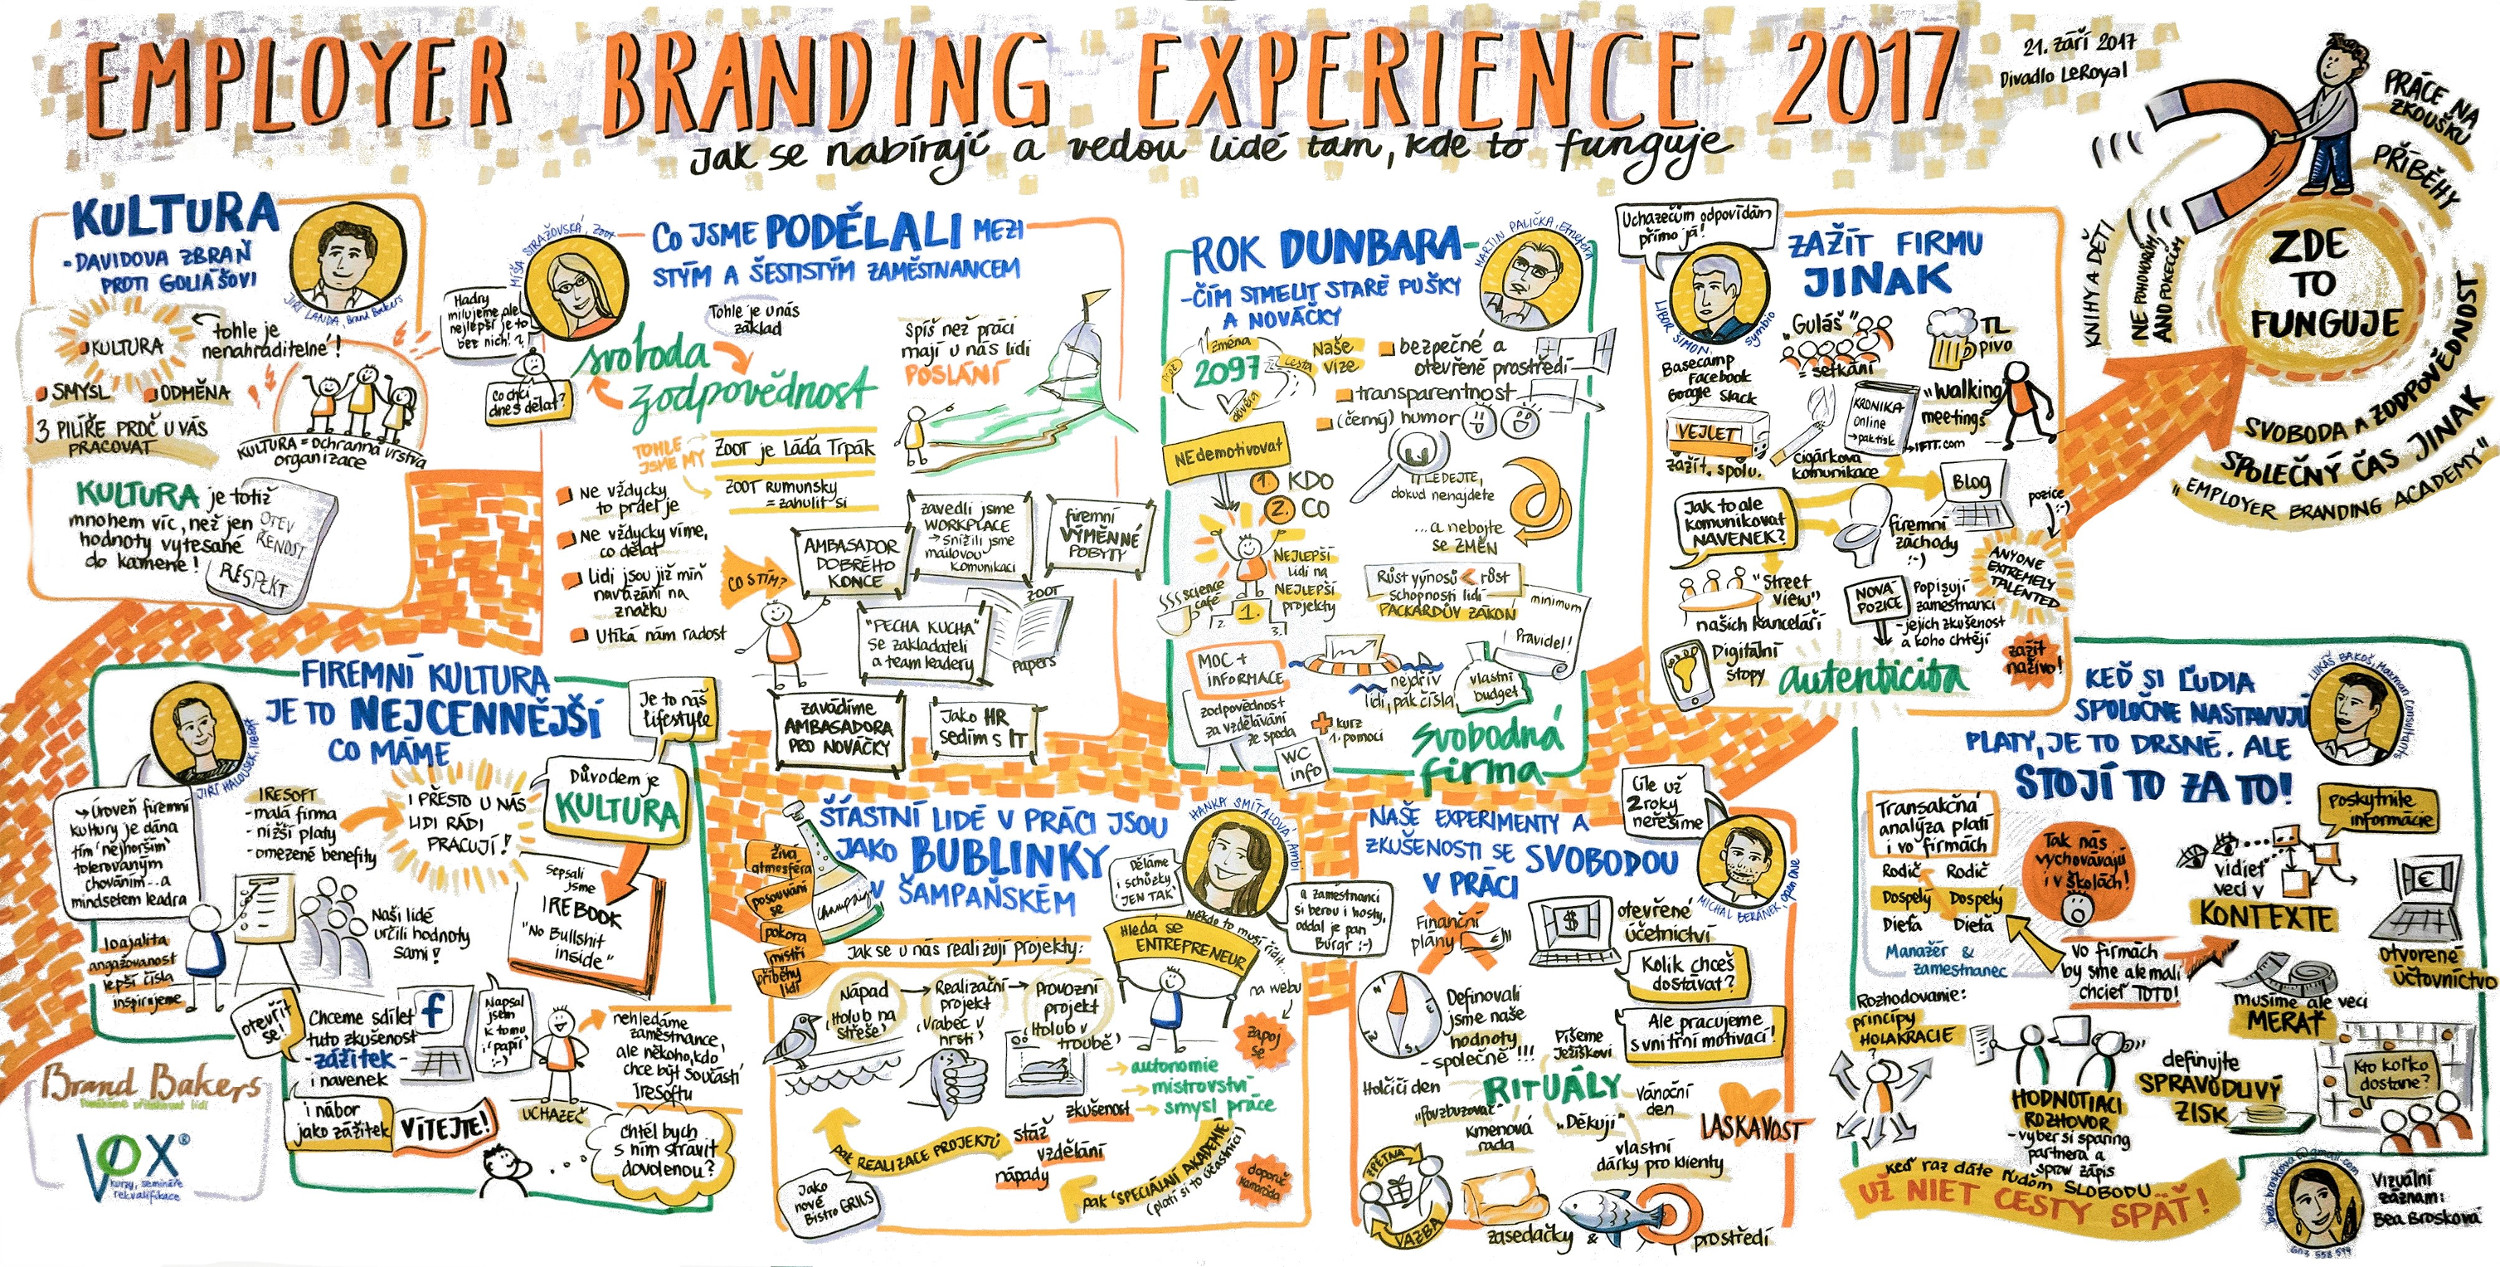 konference Employer Branding Experince 2017